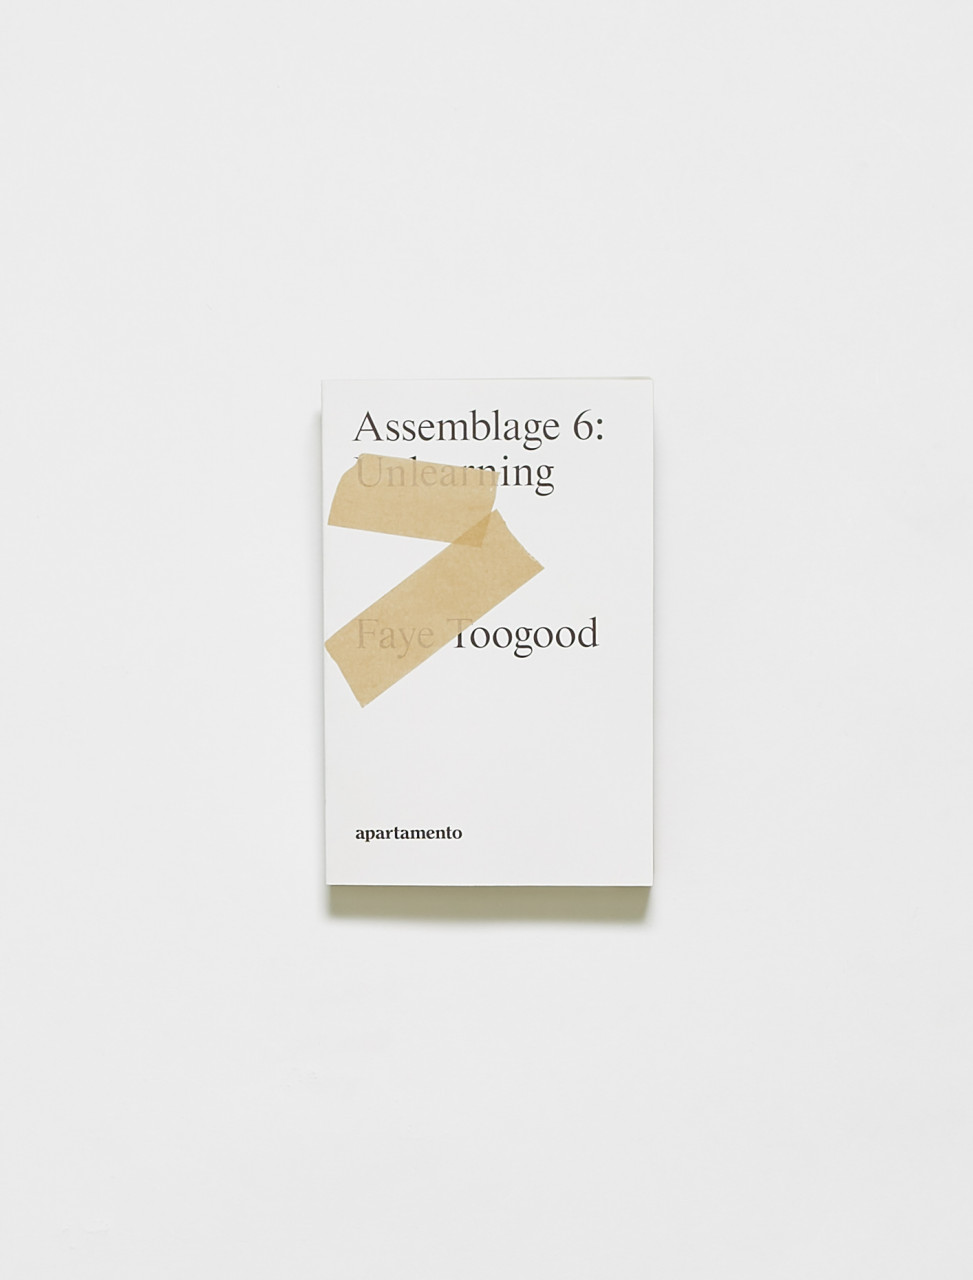 9788409277803 FAYE TOOGOOD ASSEMBLAGE 6